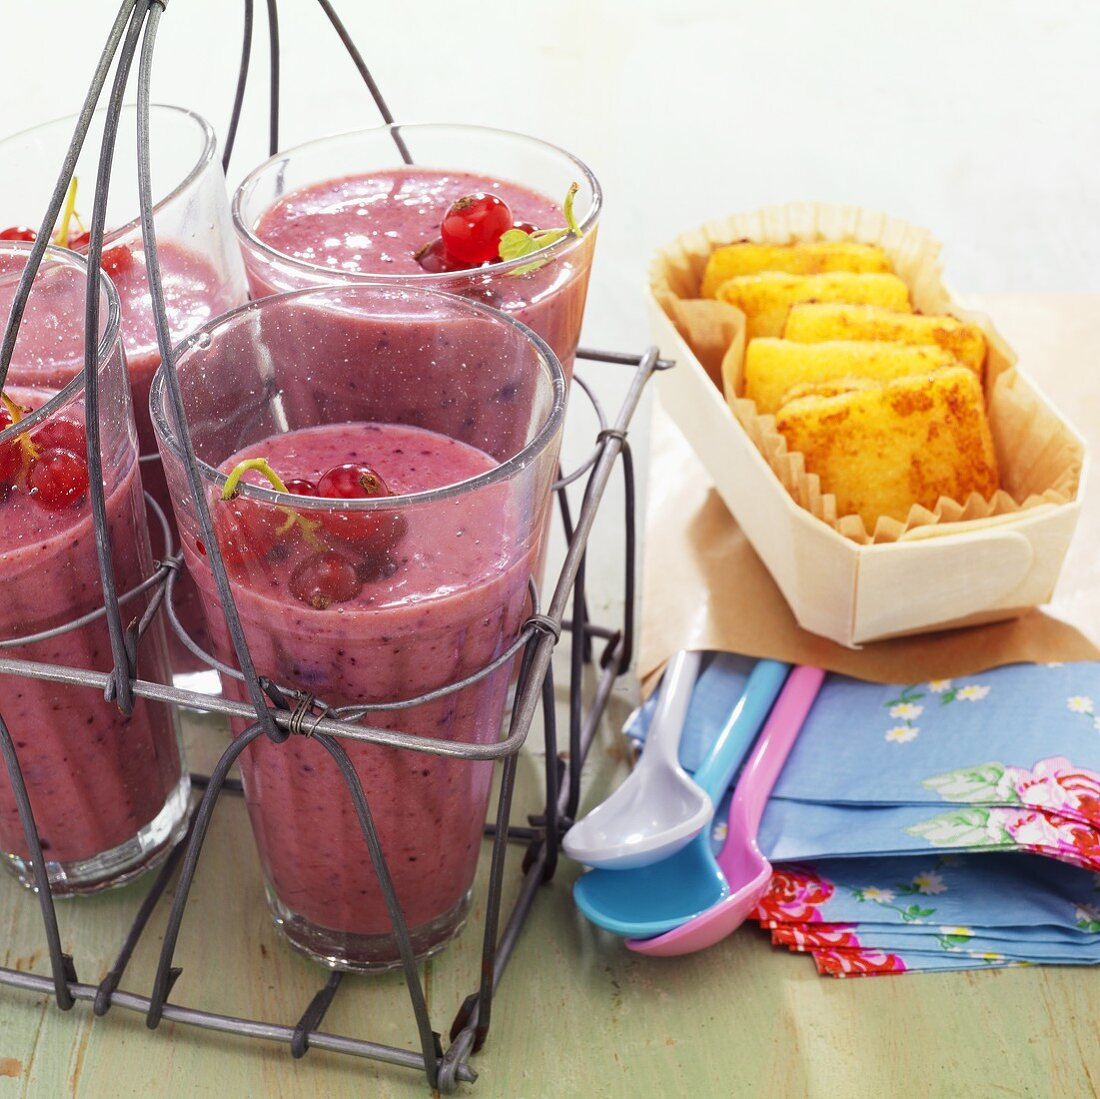 Berry-buttermilk shakes with semolina biscuits